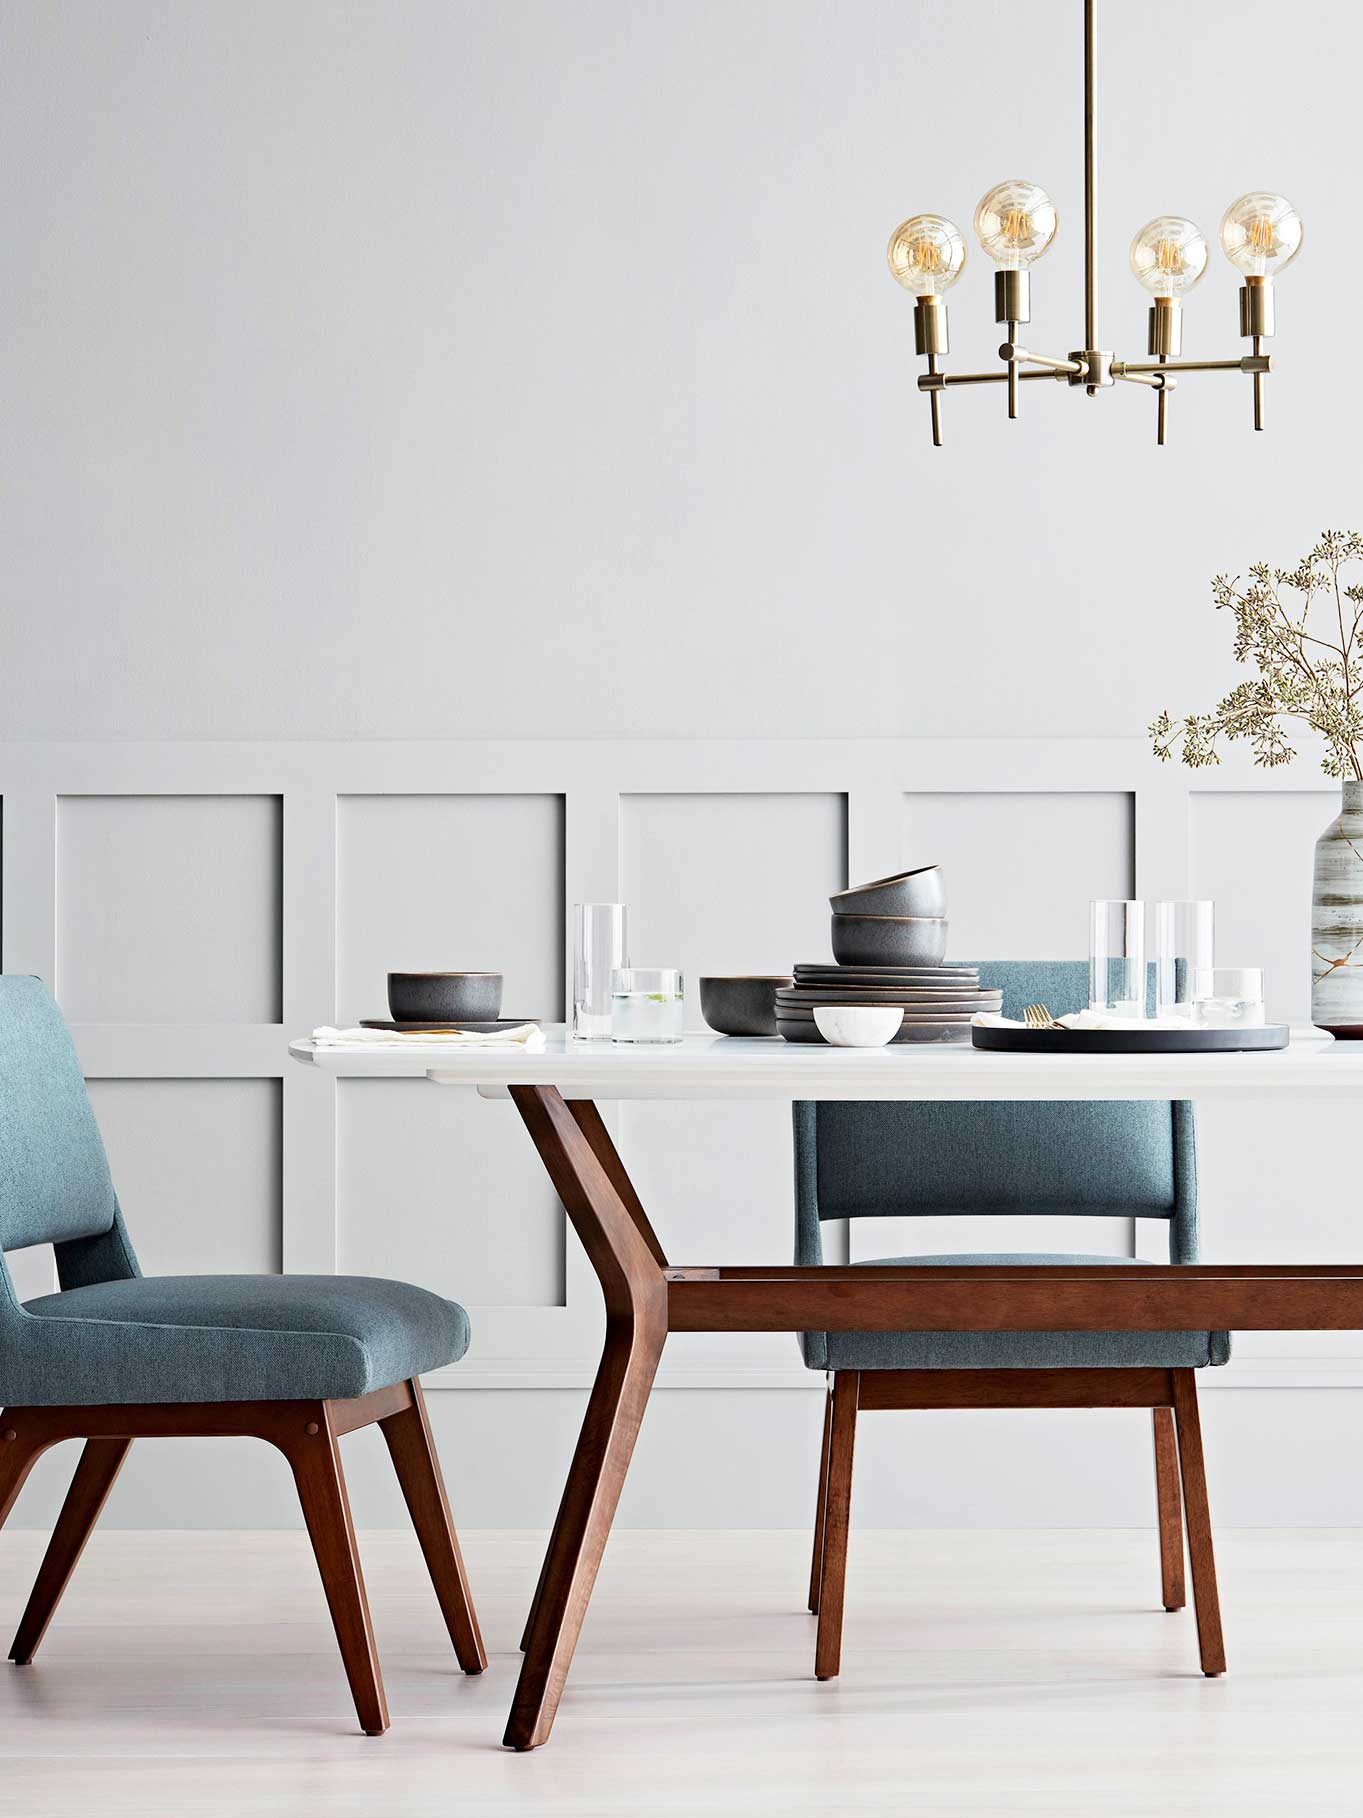 Modern dining room with blue chairs from Project 62 on Thou Swell @thouswellblog